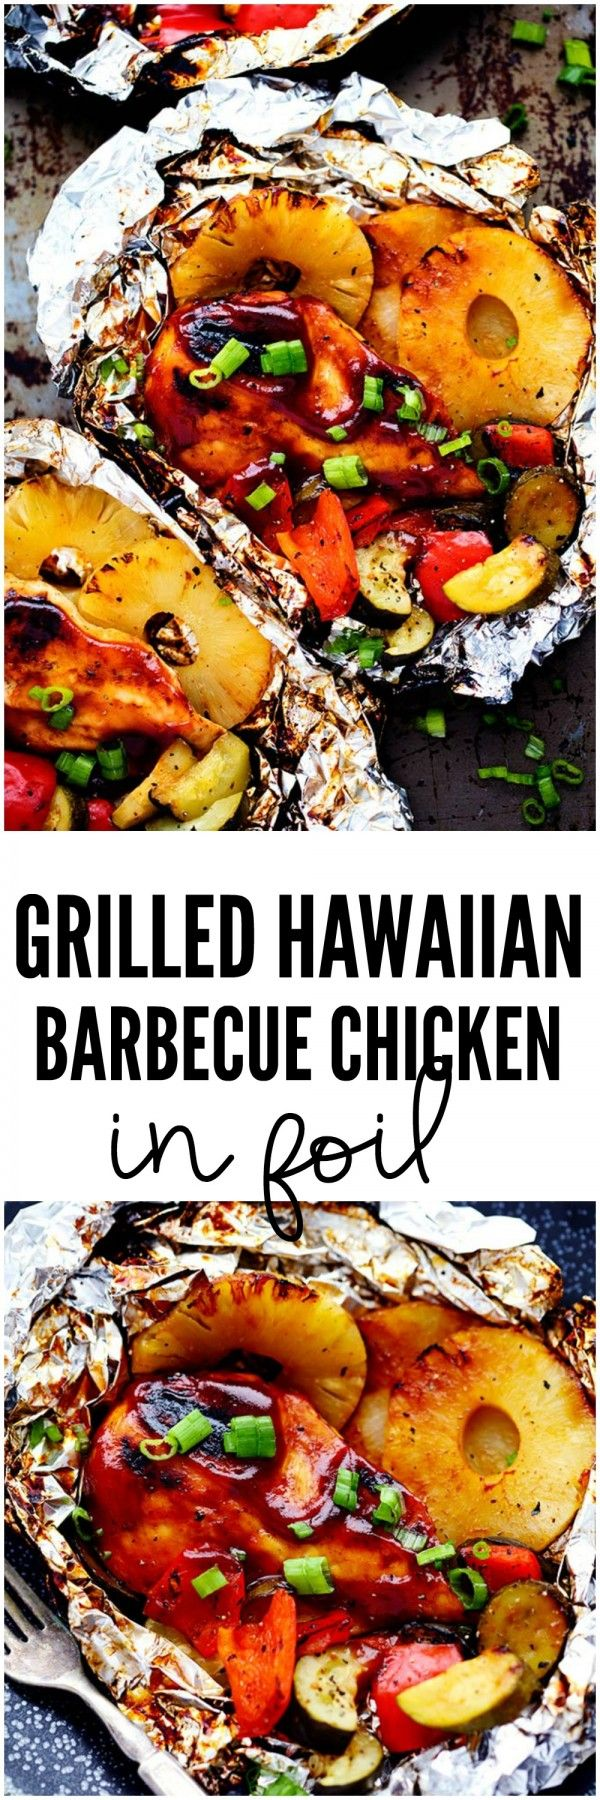 Get the recipe Grilled Hawaiian Barbecue Chicken @recipes_to_go